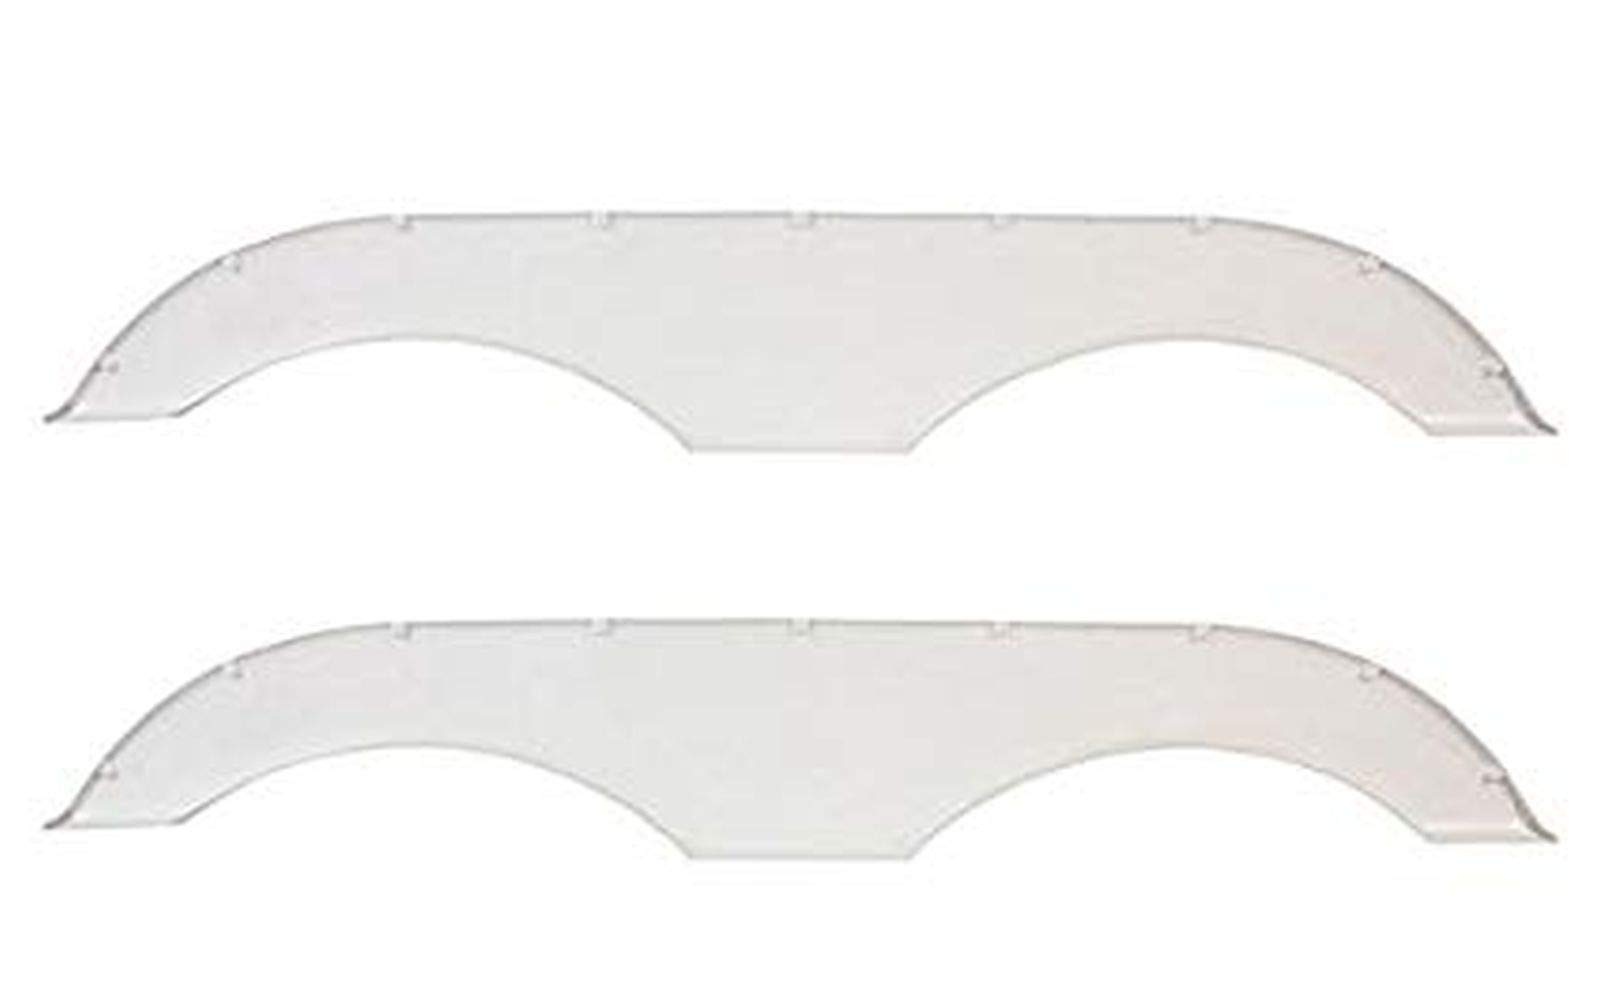 Alpha Systems Pair of Tandem Trailer Fender Skirt - White by Alpha Systems